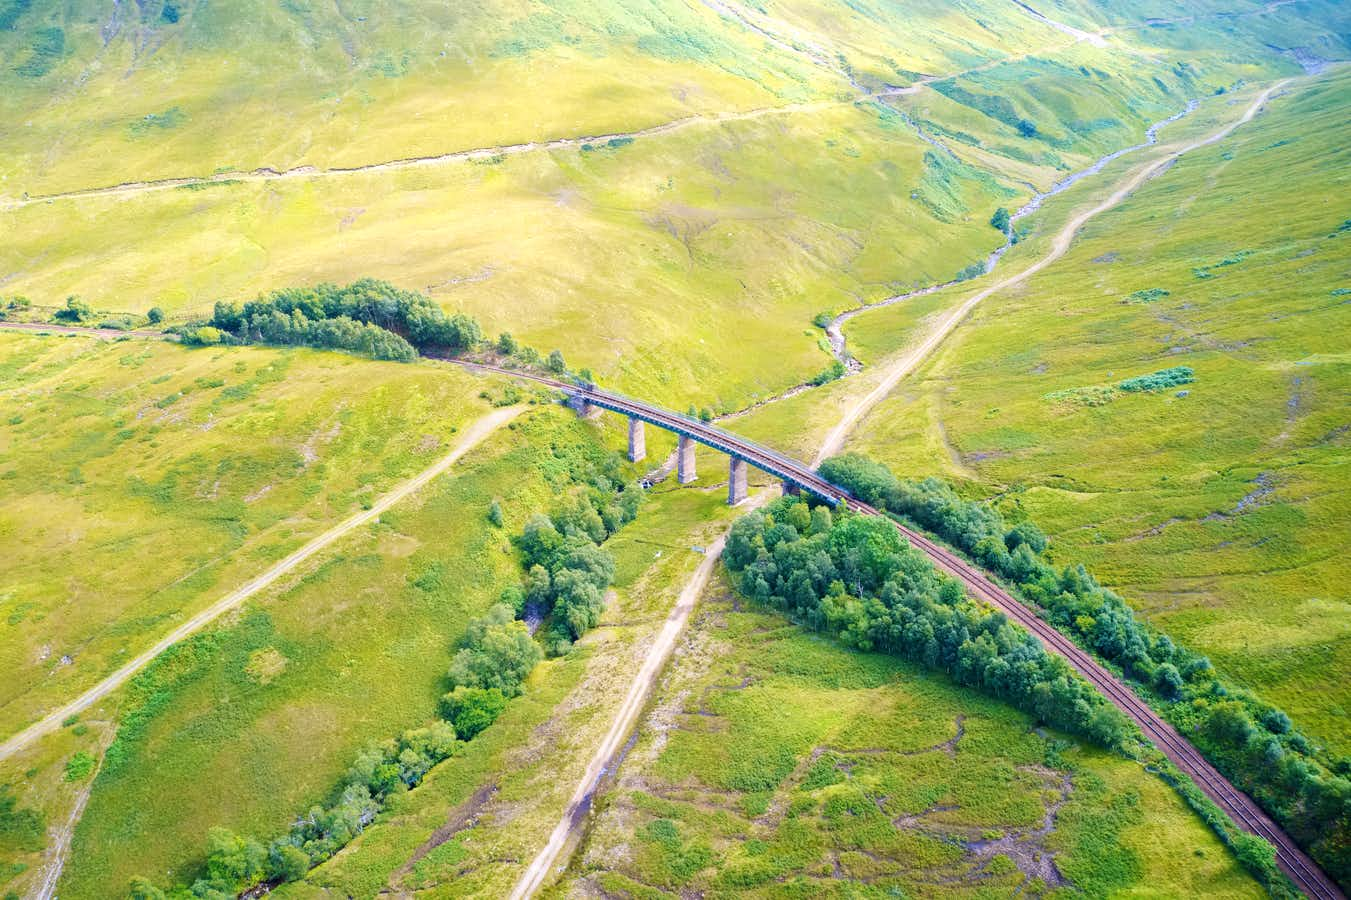 Loch Lomond, Trossachs and the West Highland Line